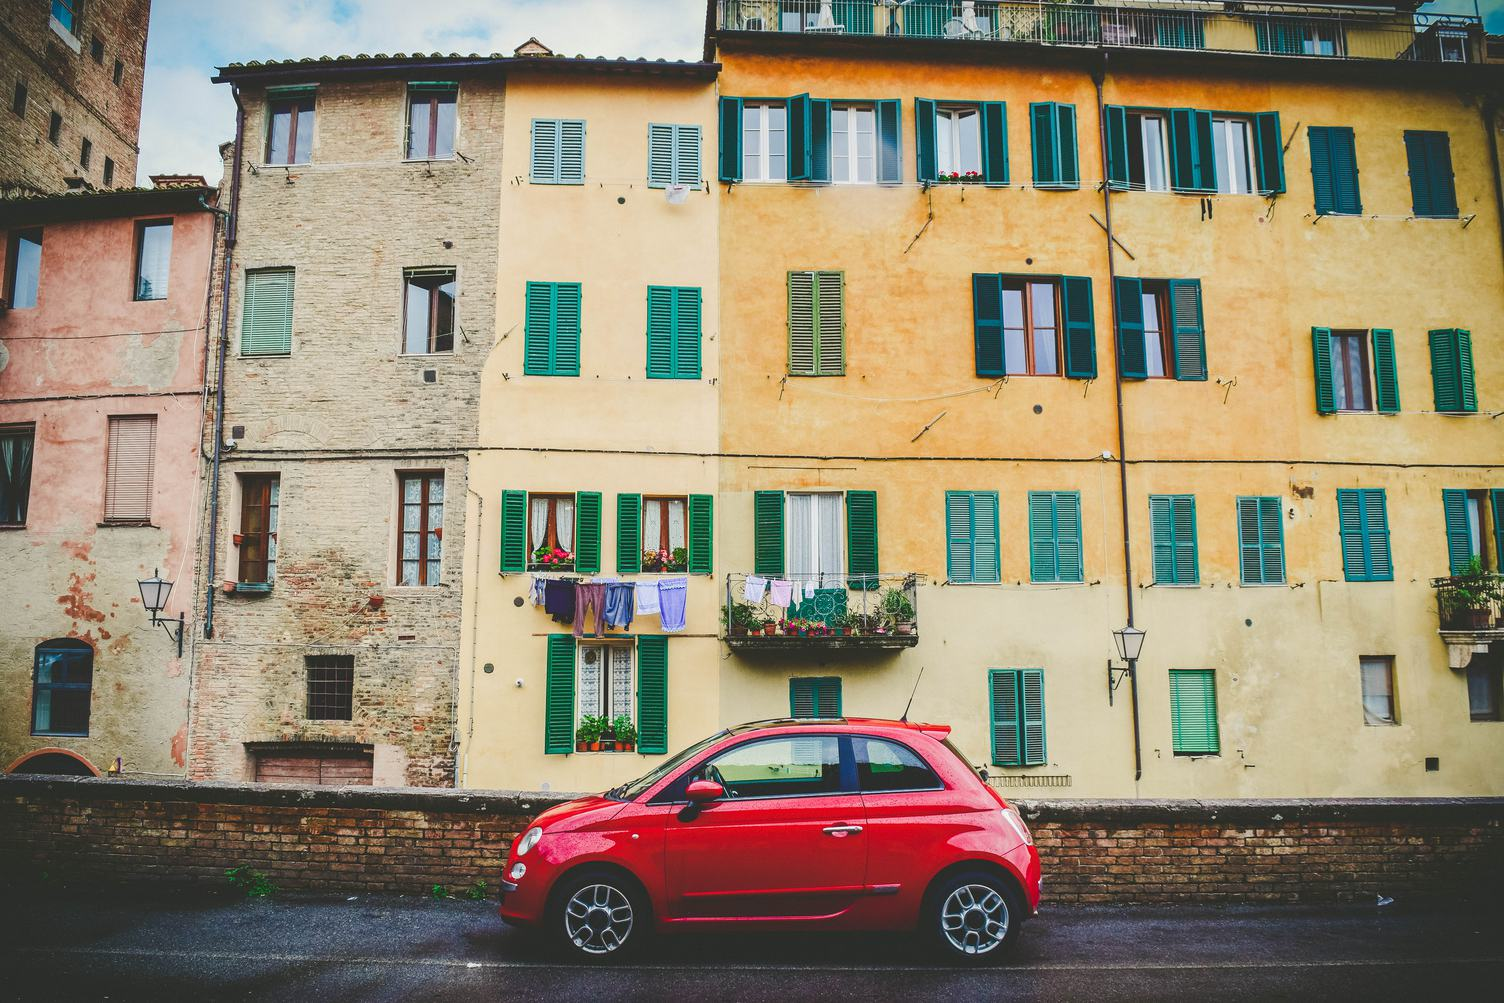 Red Fiat 500 Parks in front of Old Yellow Buildings with Green Shutters in Siena Italy